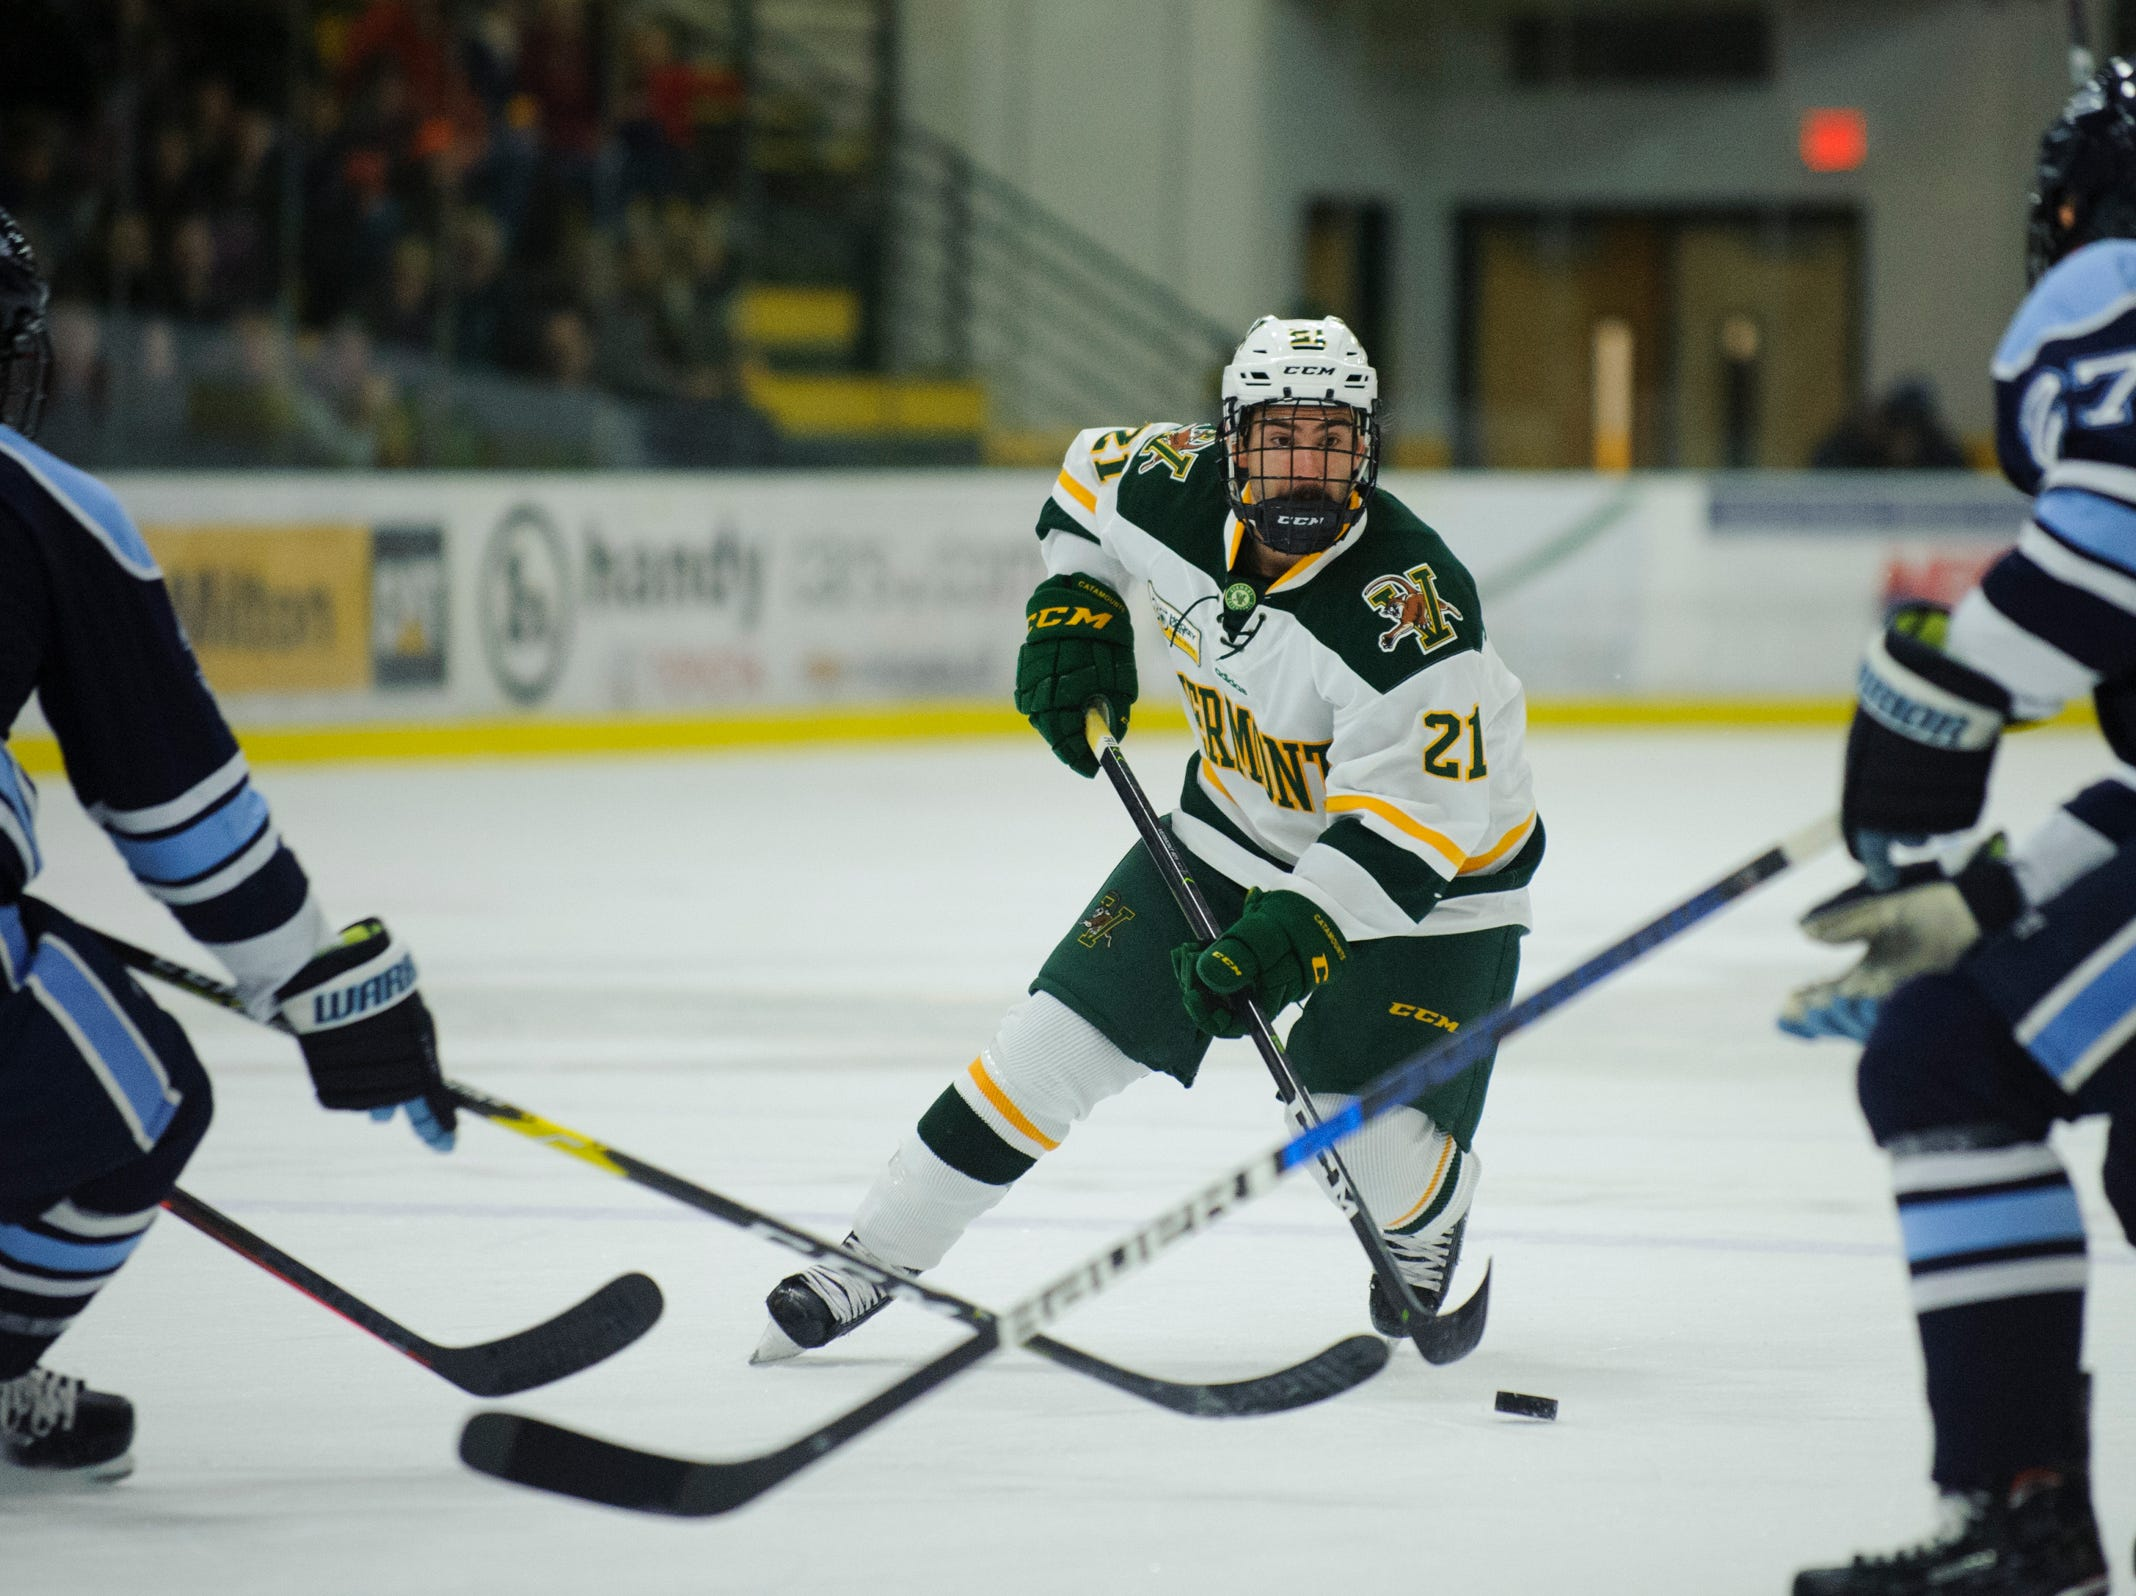 Vermont forward Martin Frechette (21) skates with the puck during the men's hockey game between the Mine Black Bears and the Vermont Catamounts at Gutterson Field House on Friday night November 30, 2018 in Burlington.